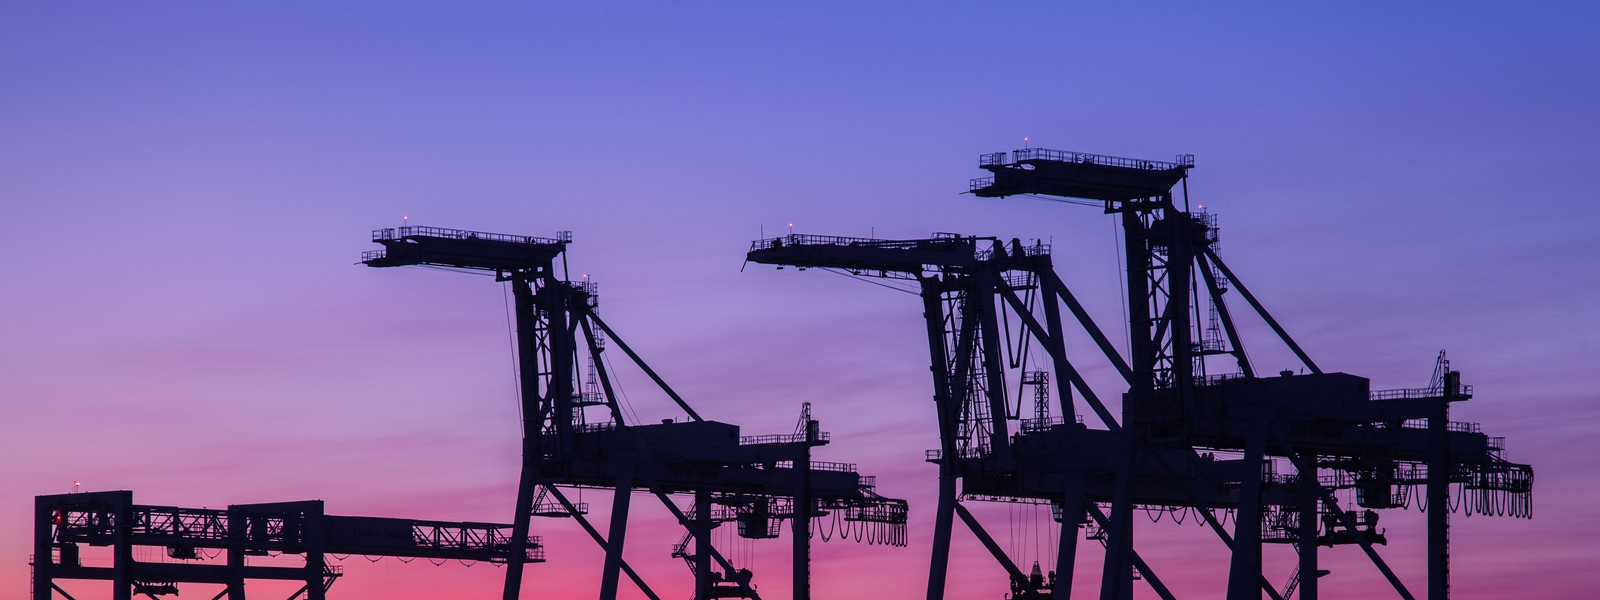 140616 9086 Port Of Oakland Cranes At Sunset X3